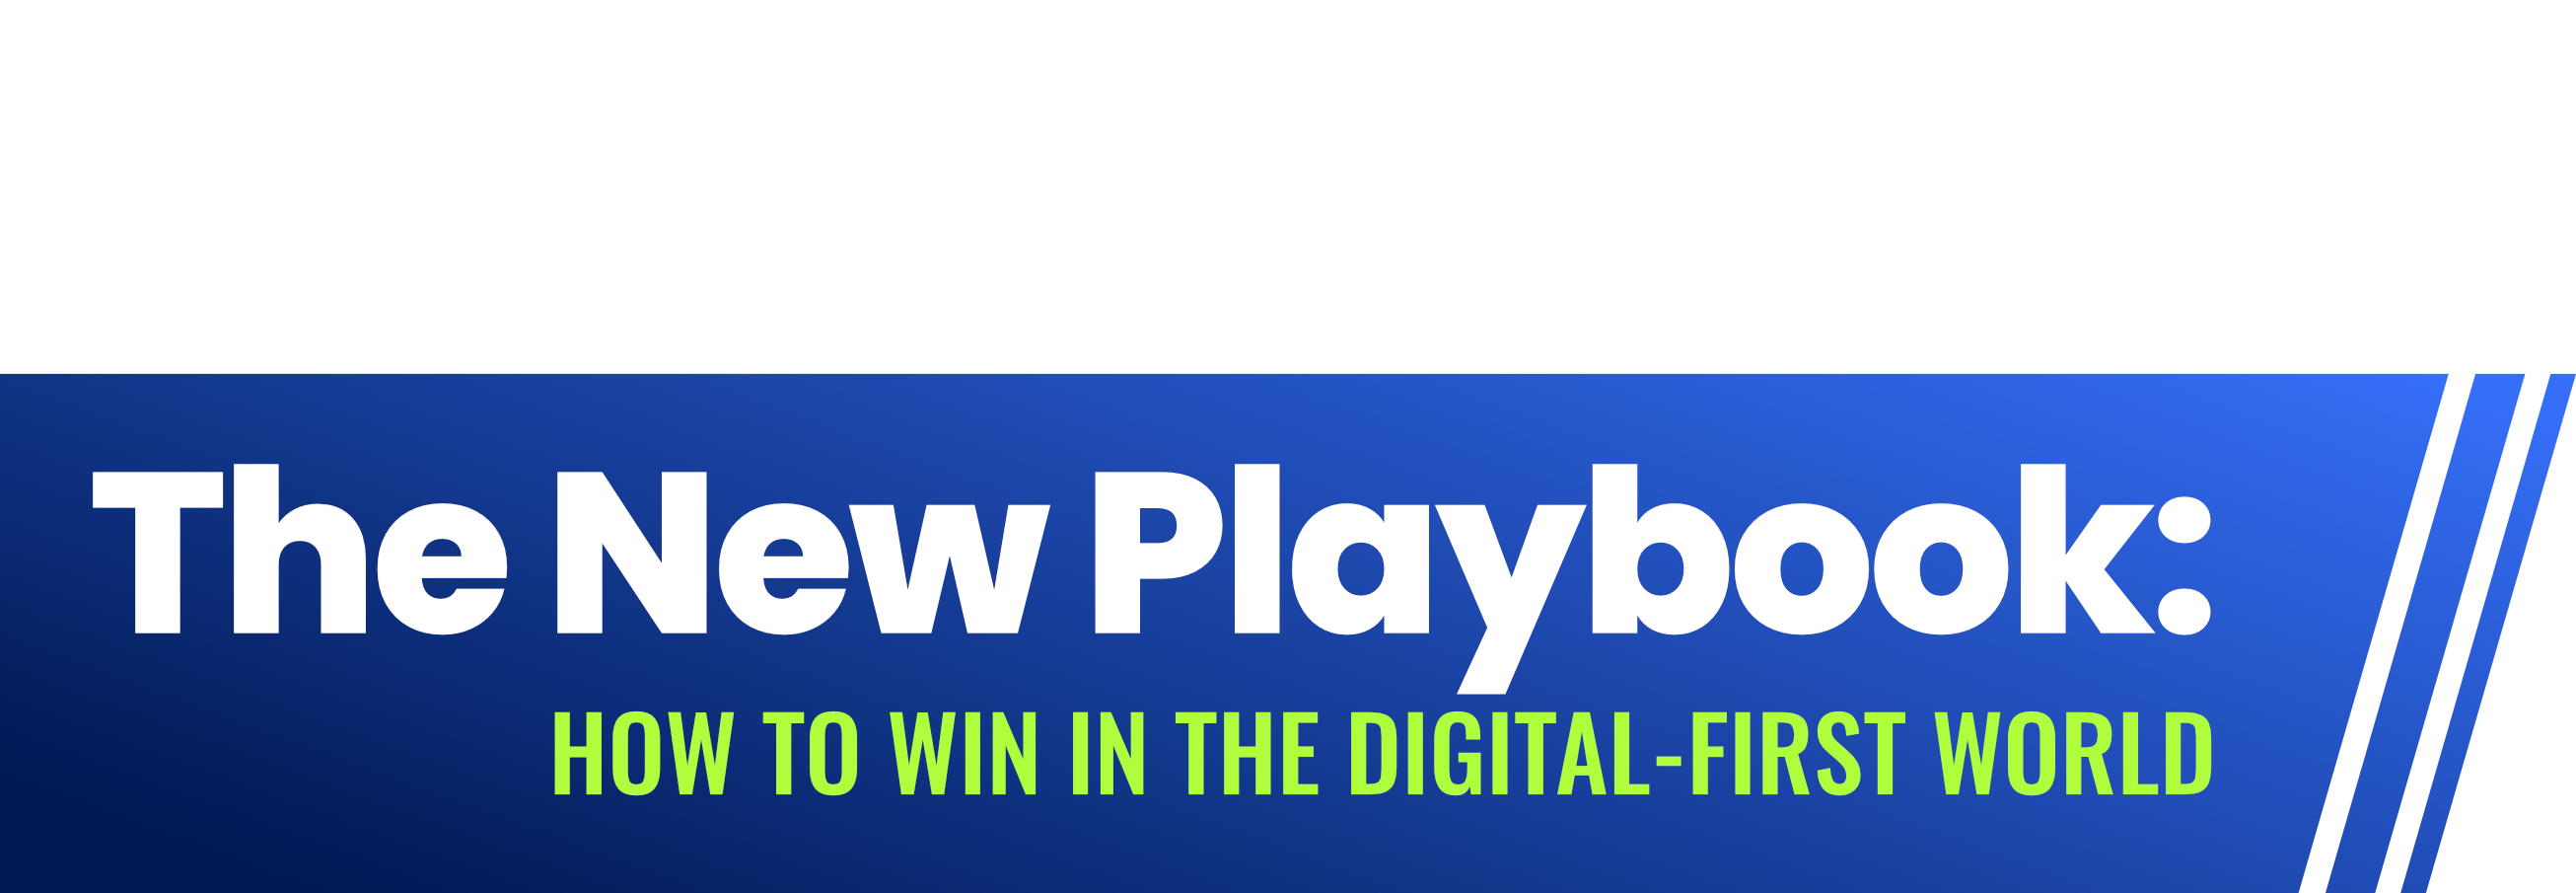 The New Playbook: How to Win in the Digital-First World